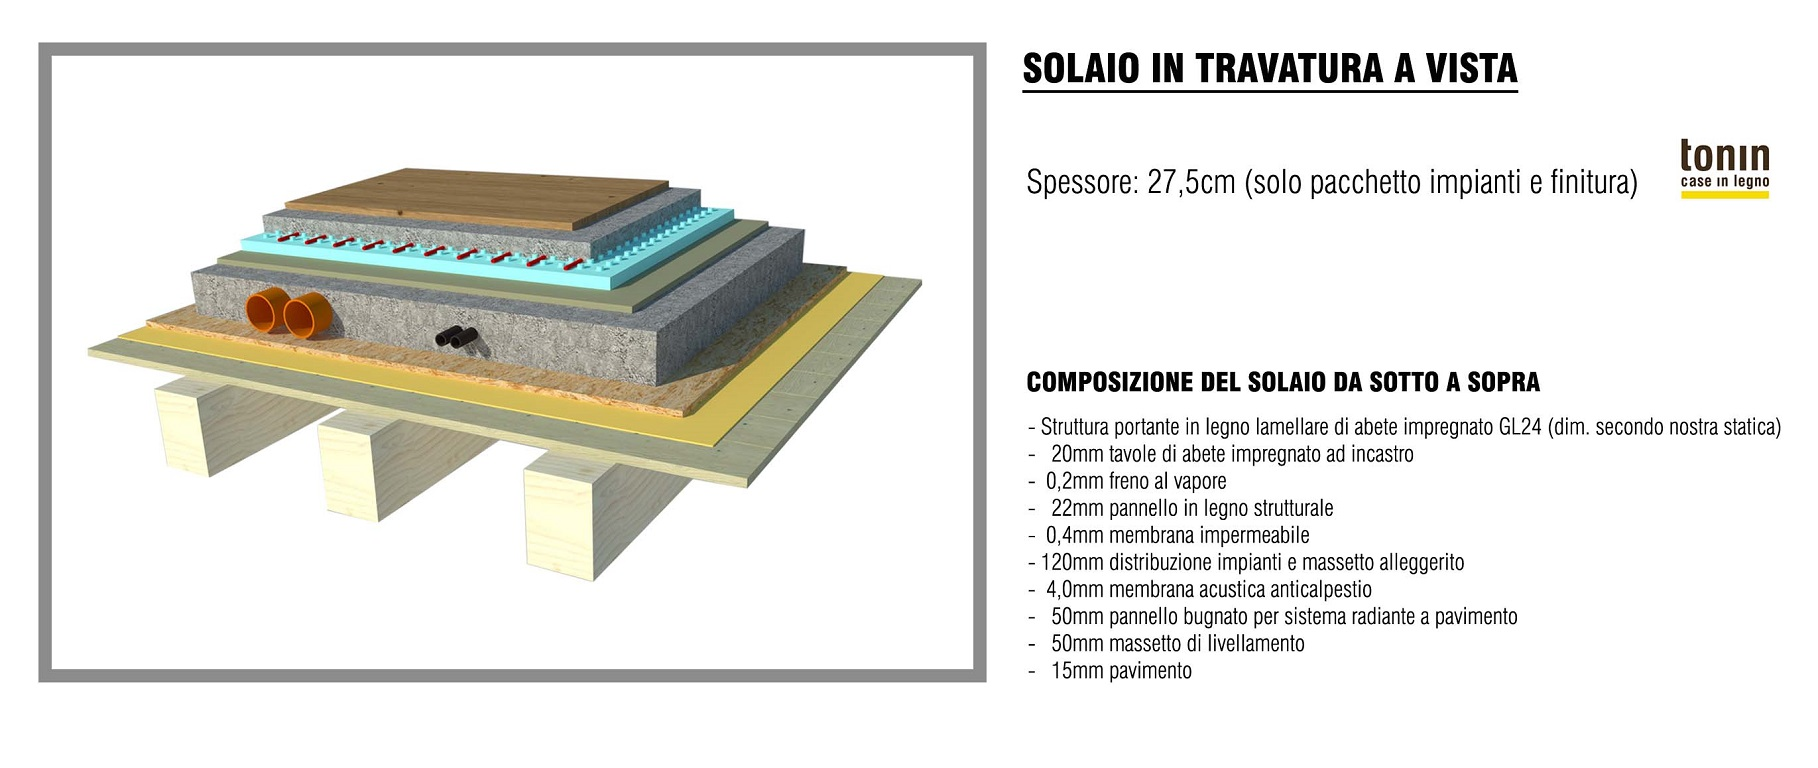 ridimensionata_SOLAIO IN TRAVATURA A VISTA